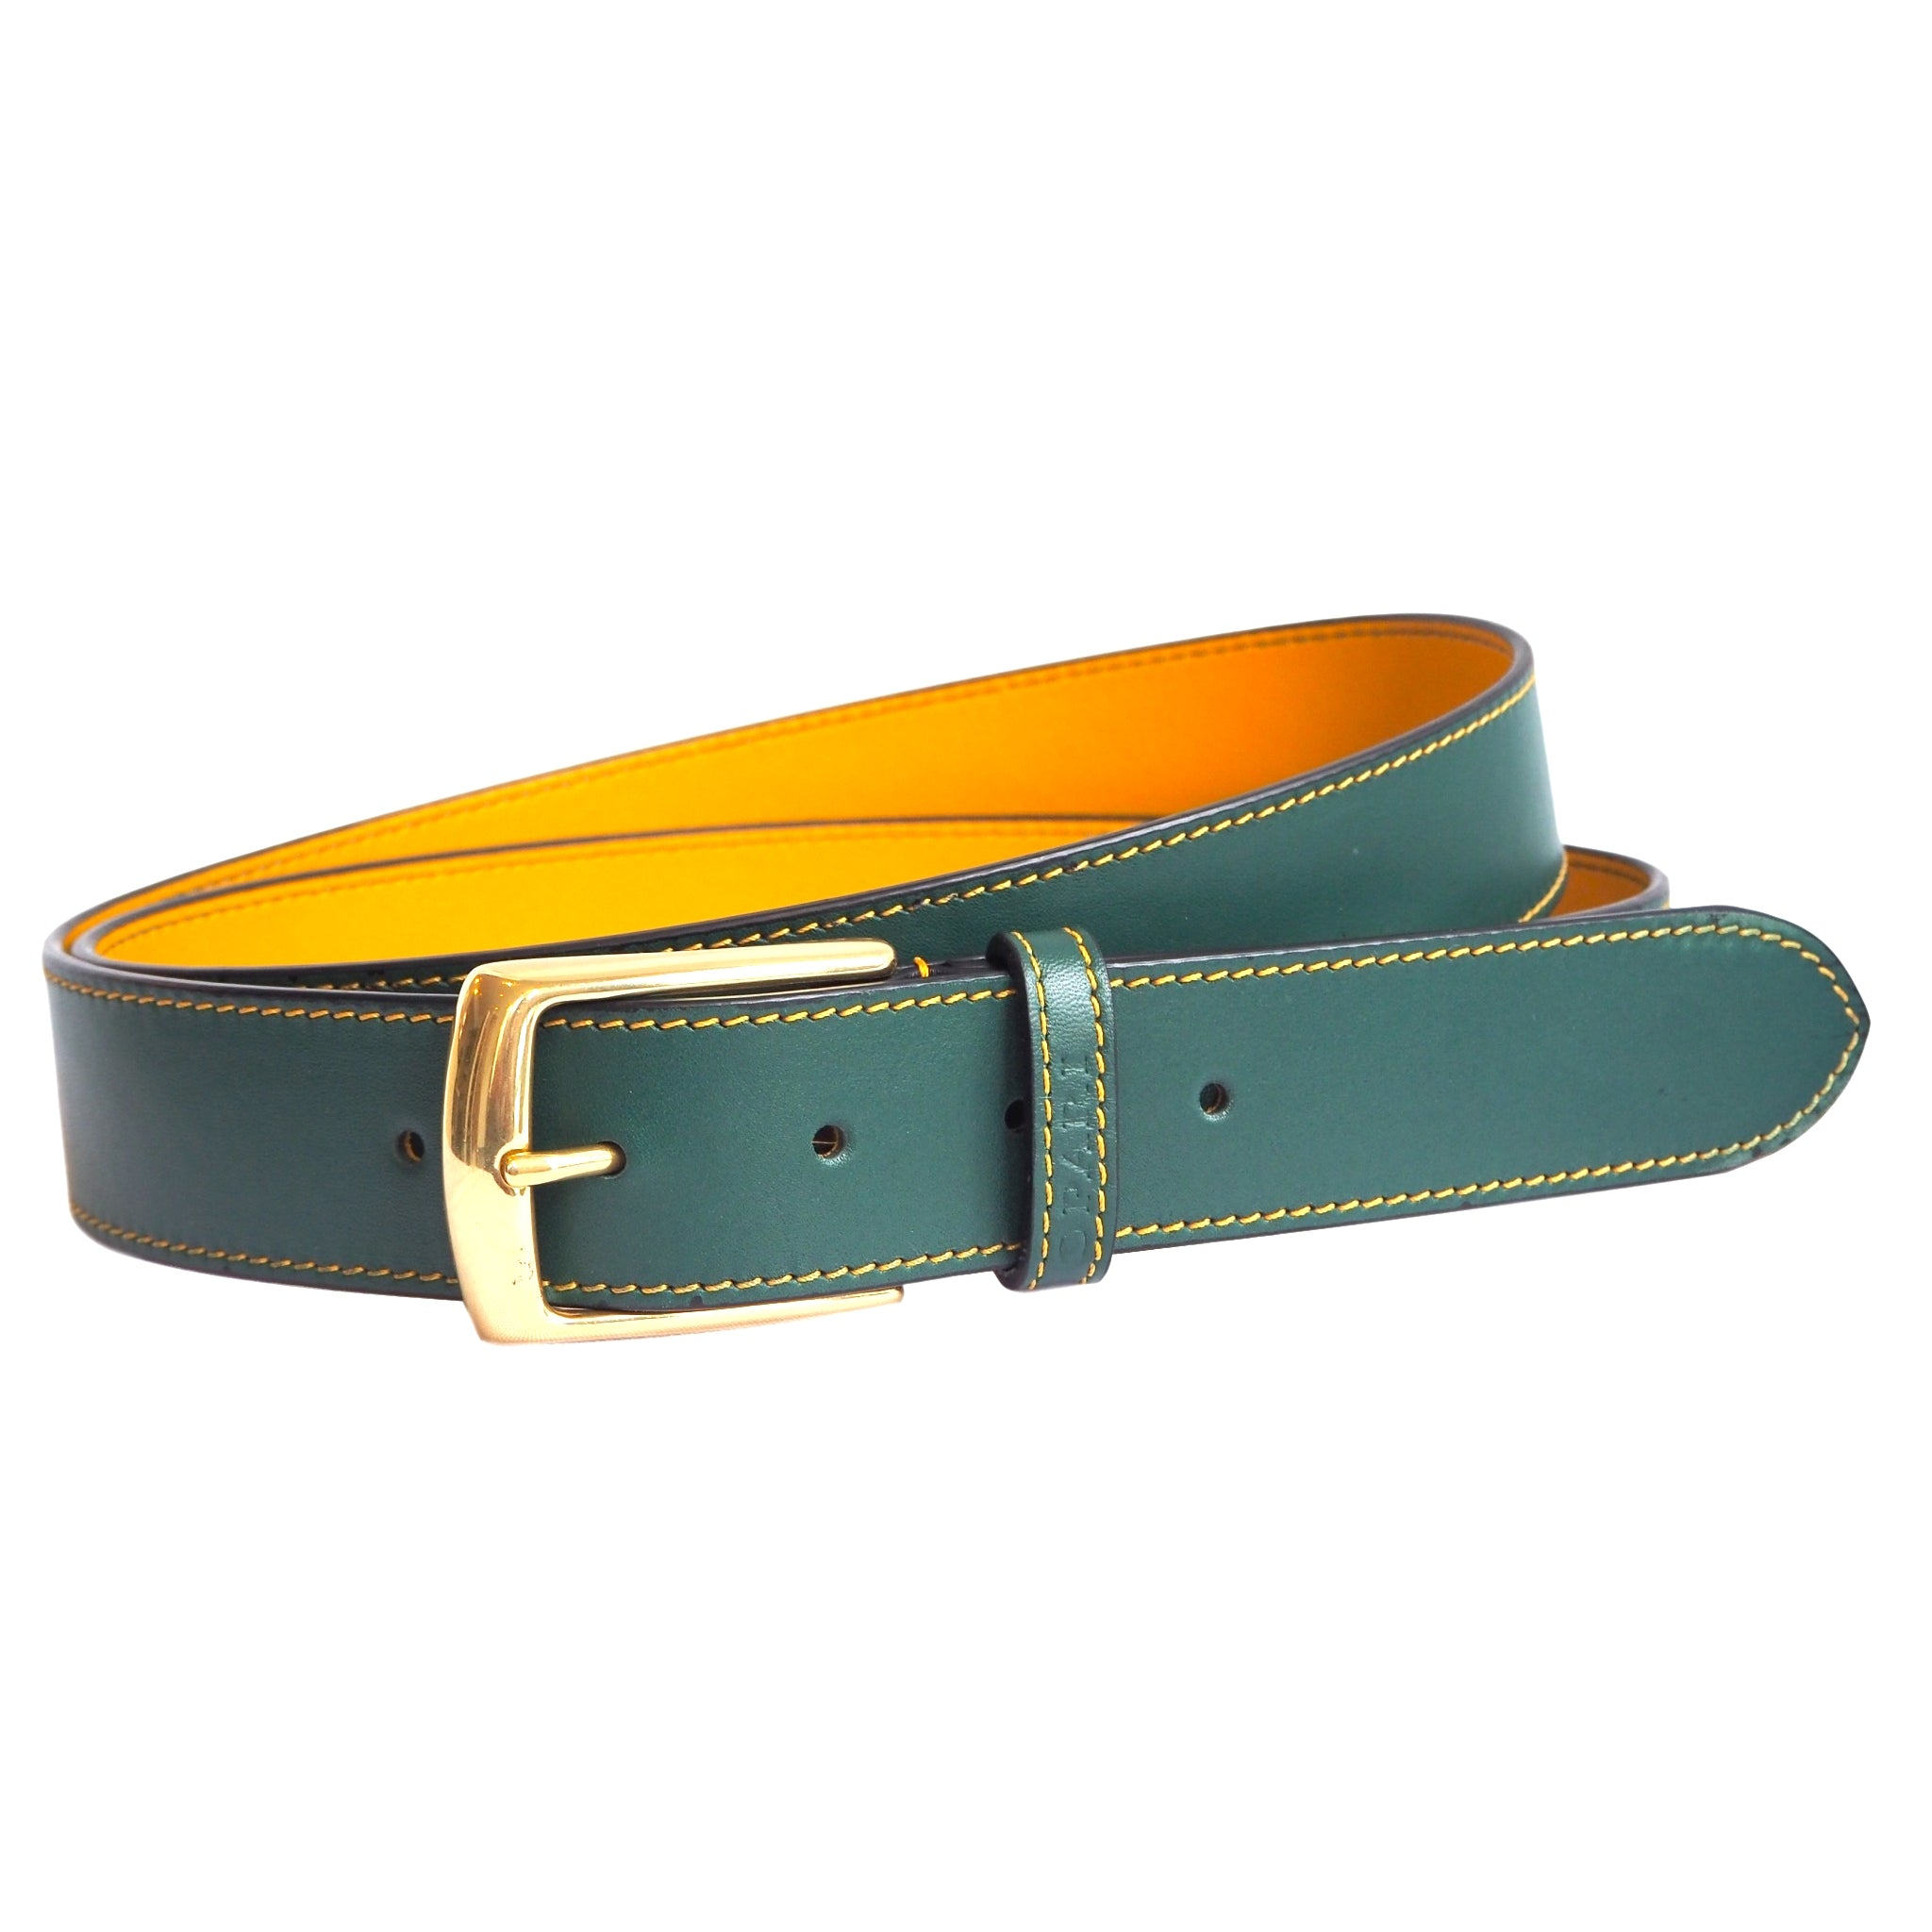 Stunning Forest Green Leather Belt by Opari